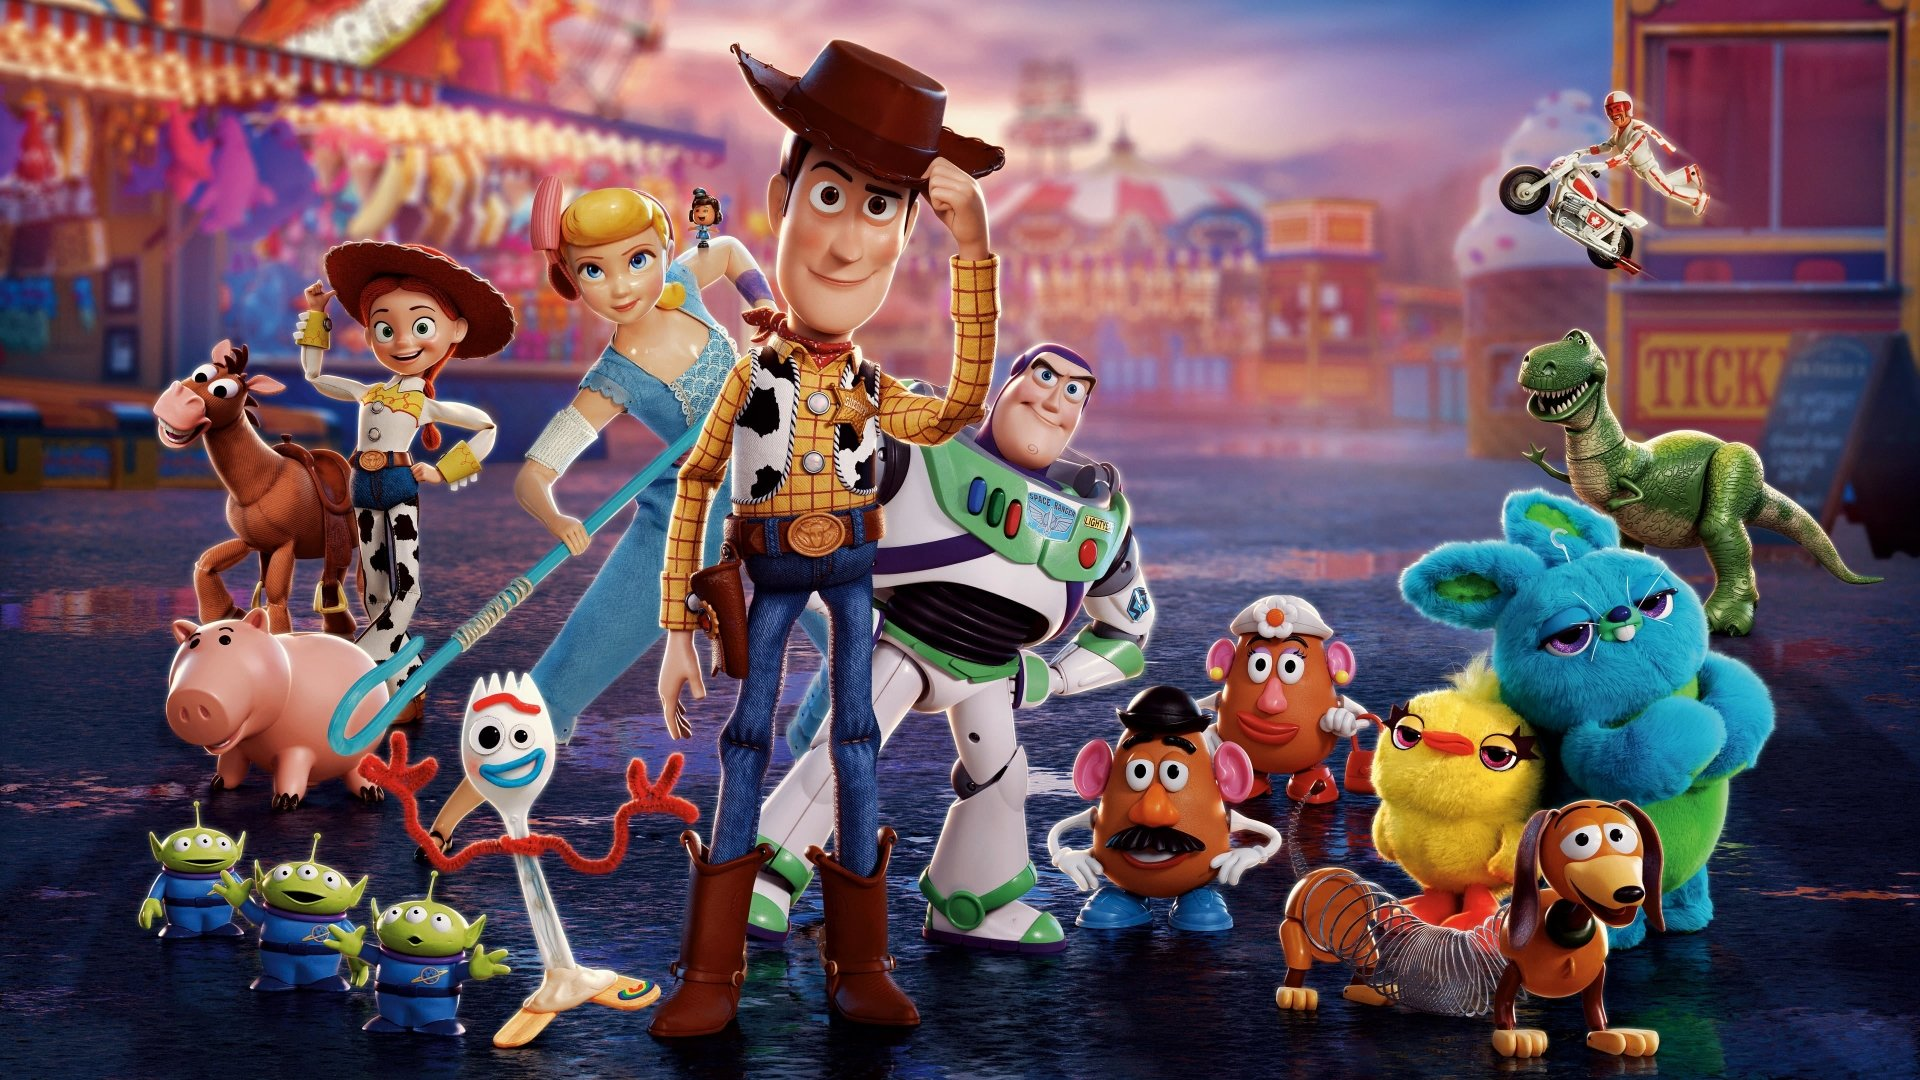 Toy story 4 4k ultra hd wallpaper background image - Toy story wallpaper ...